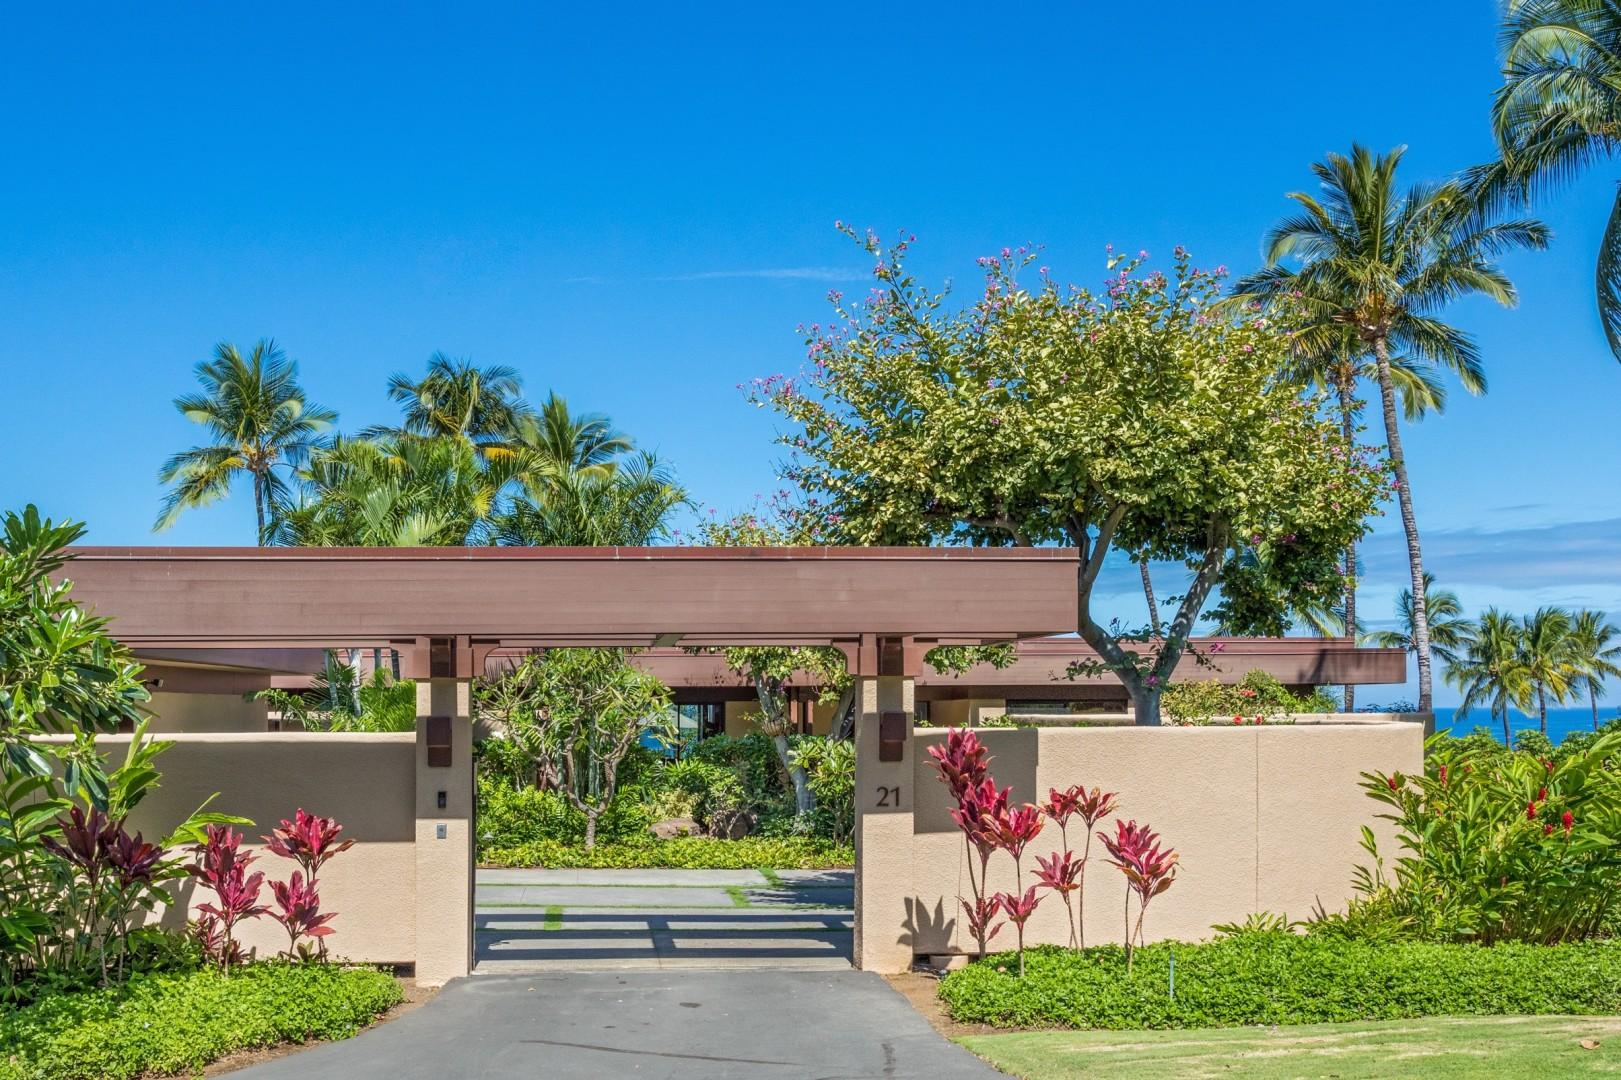 Gated Private Entrance to Villa 21 w/Large Motor Court & Two-Car Garage.